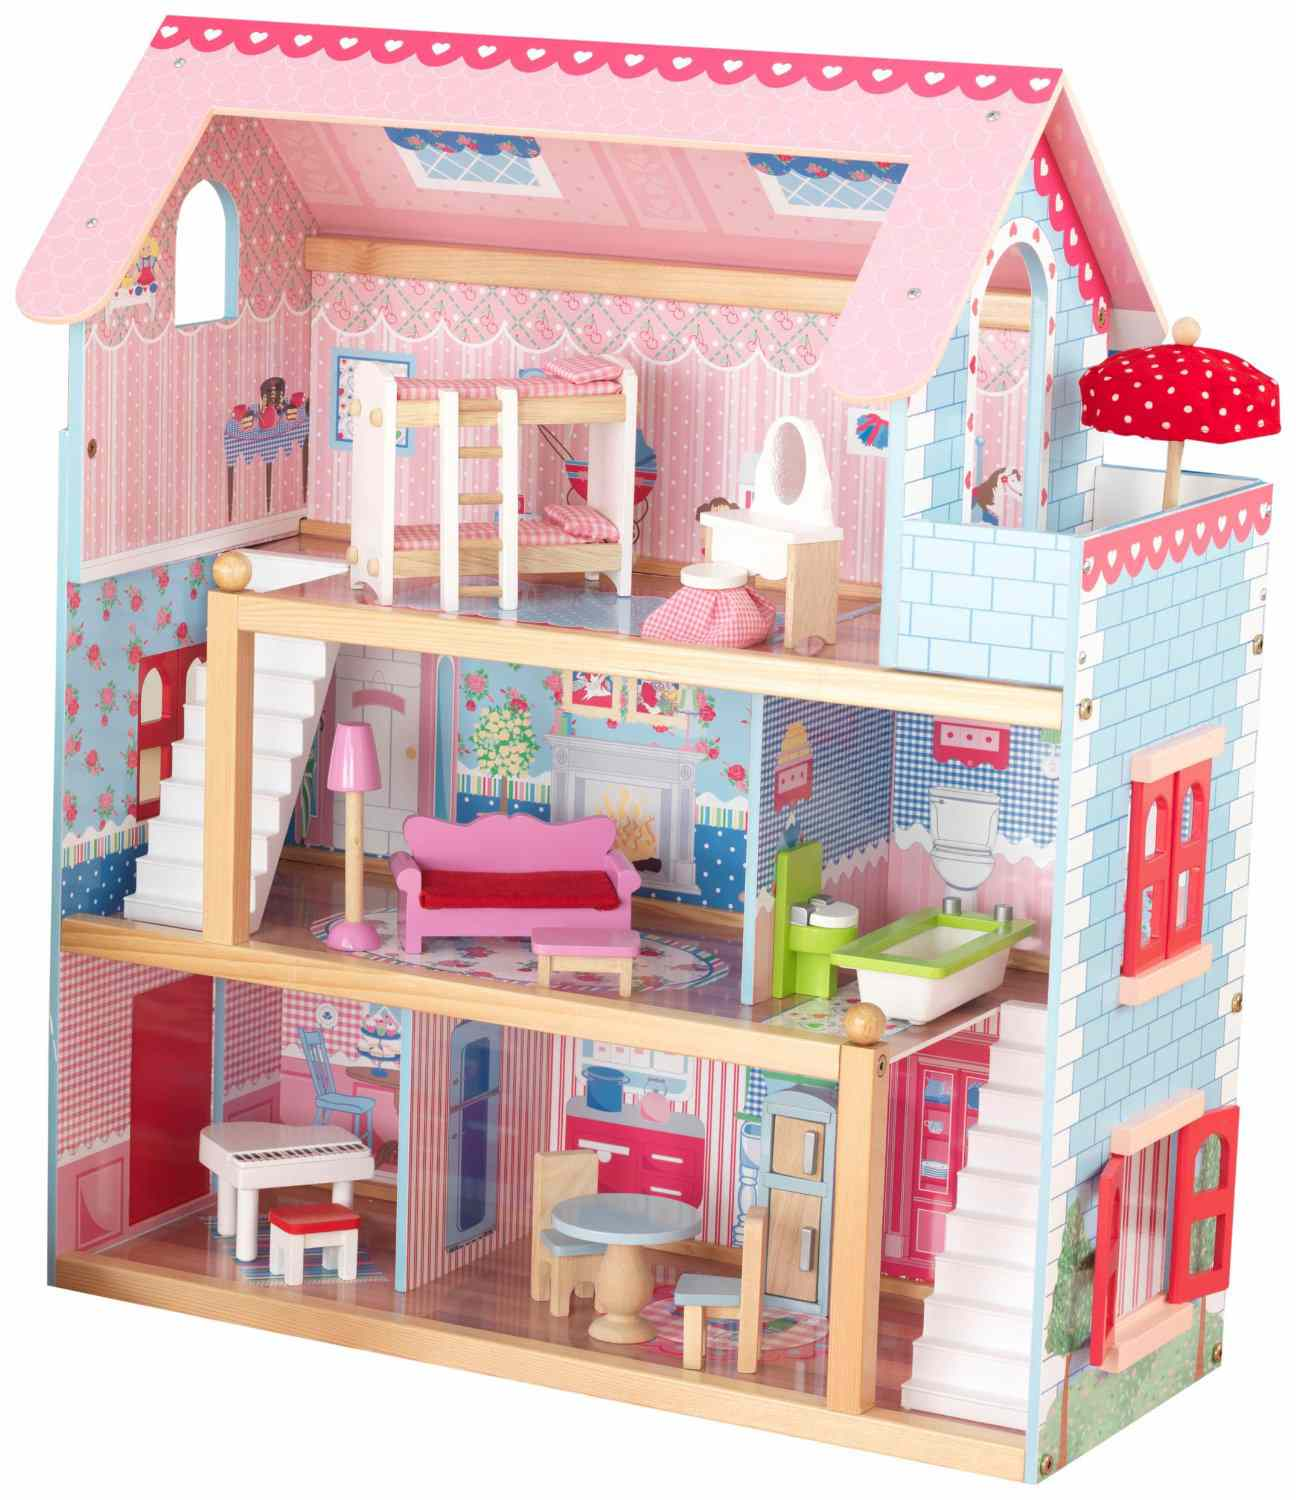 The 12 Best Dollhouses For Kids In 2021